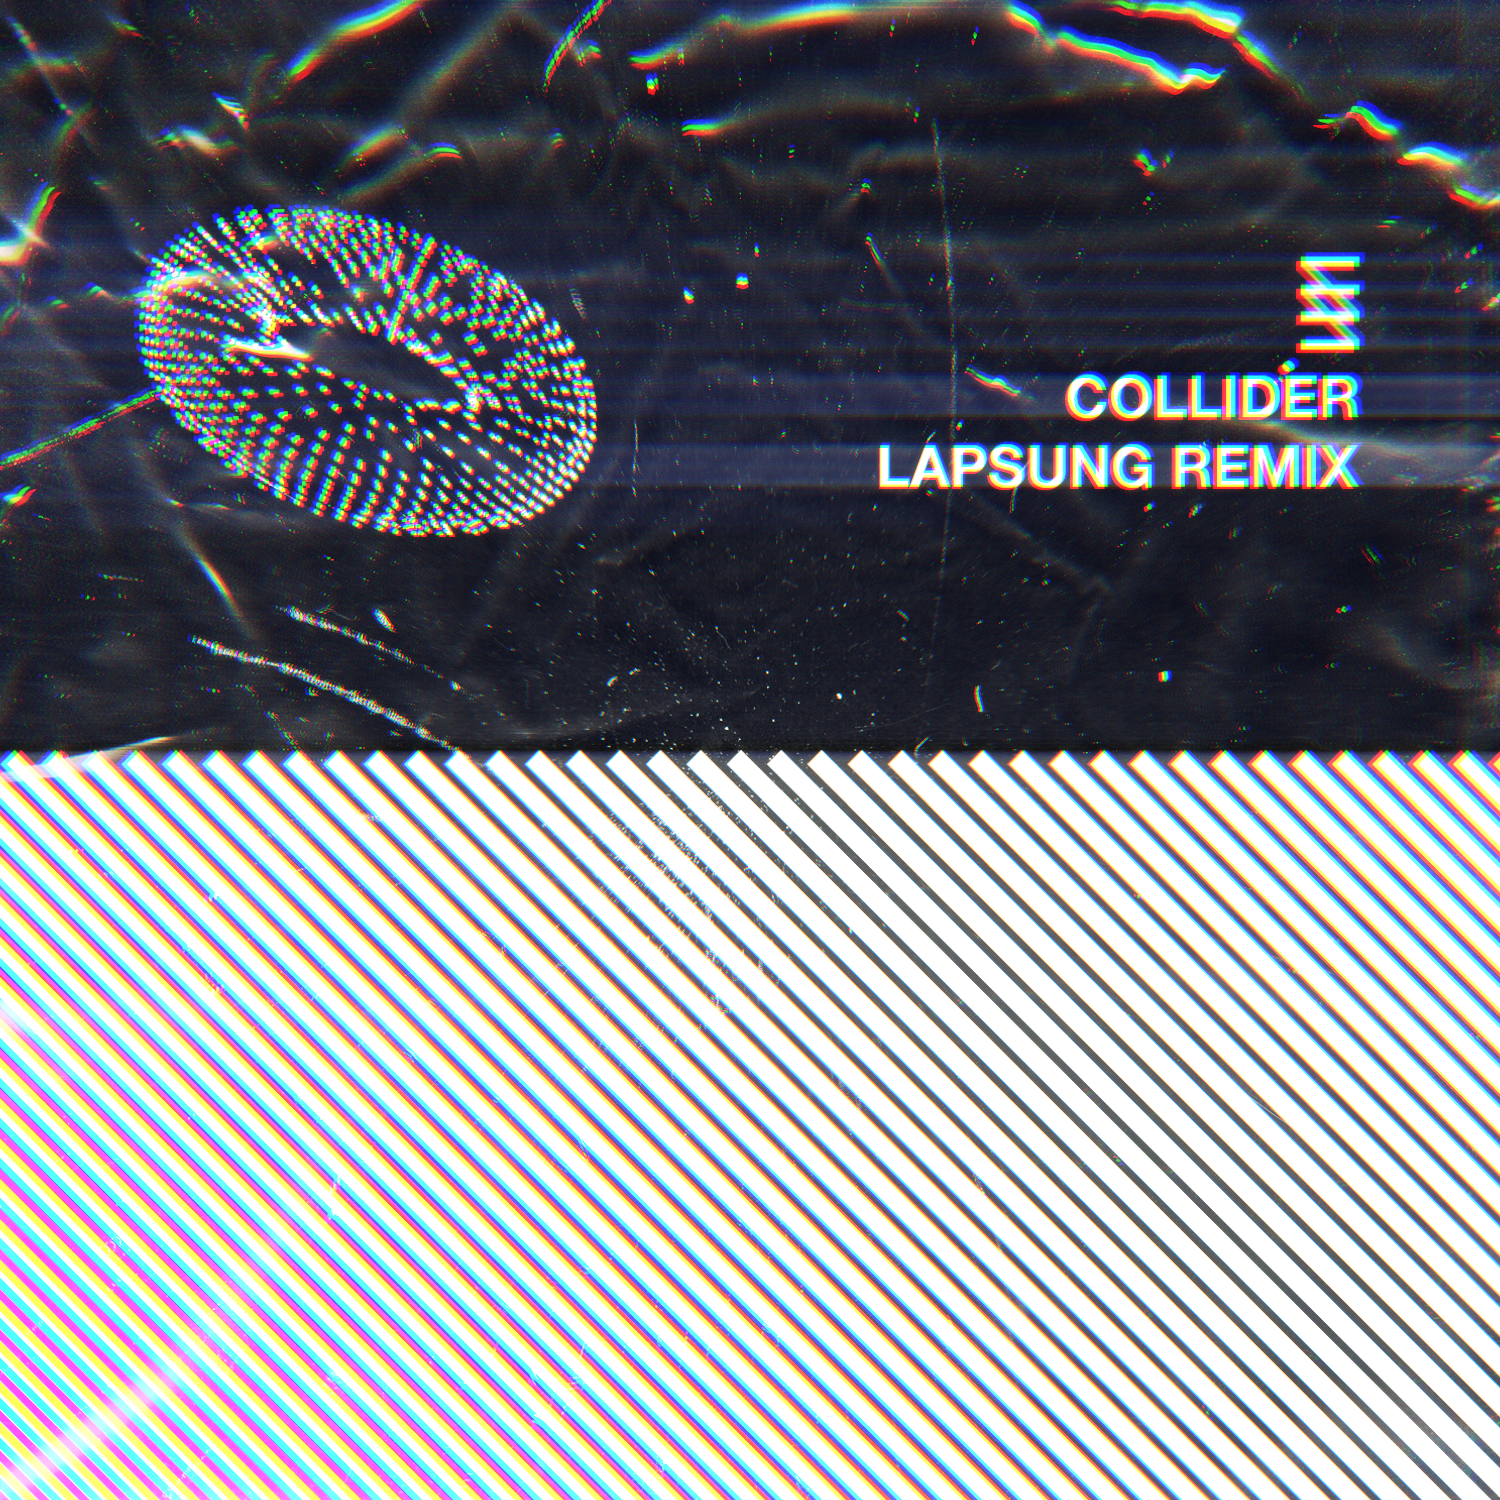 Shadient - COLLIDER(Lapsung Remix)